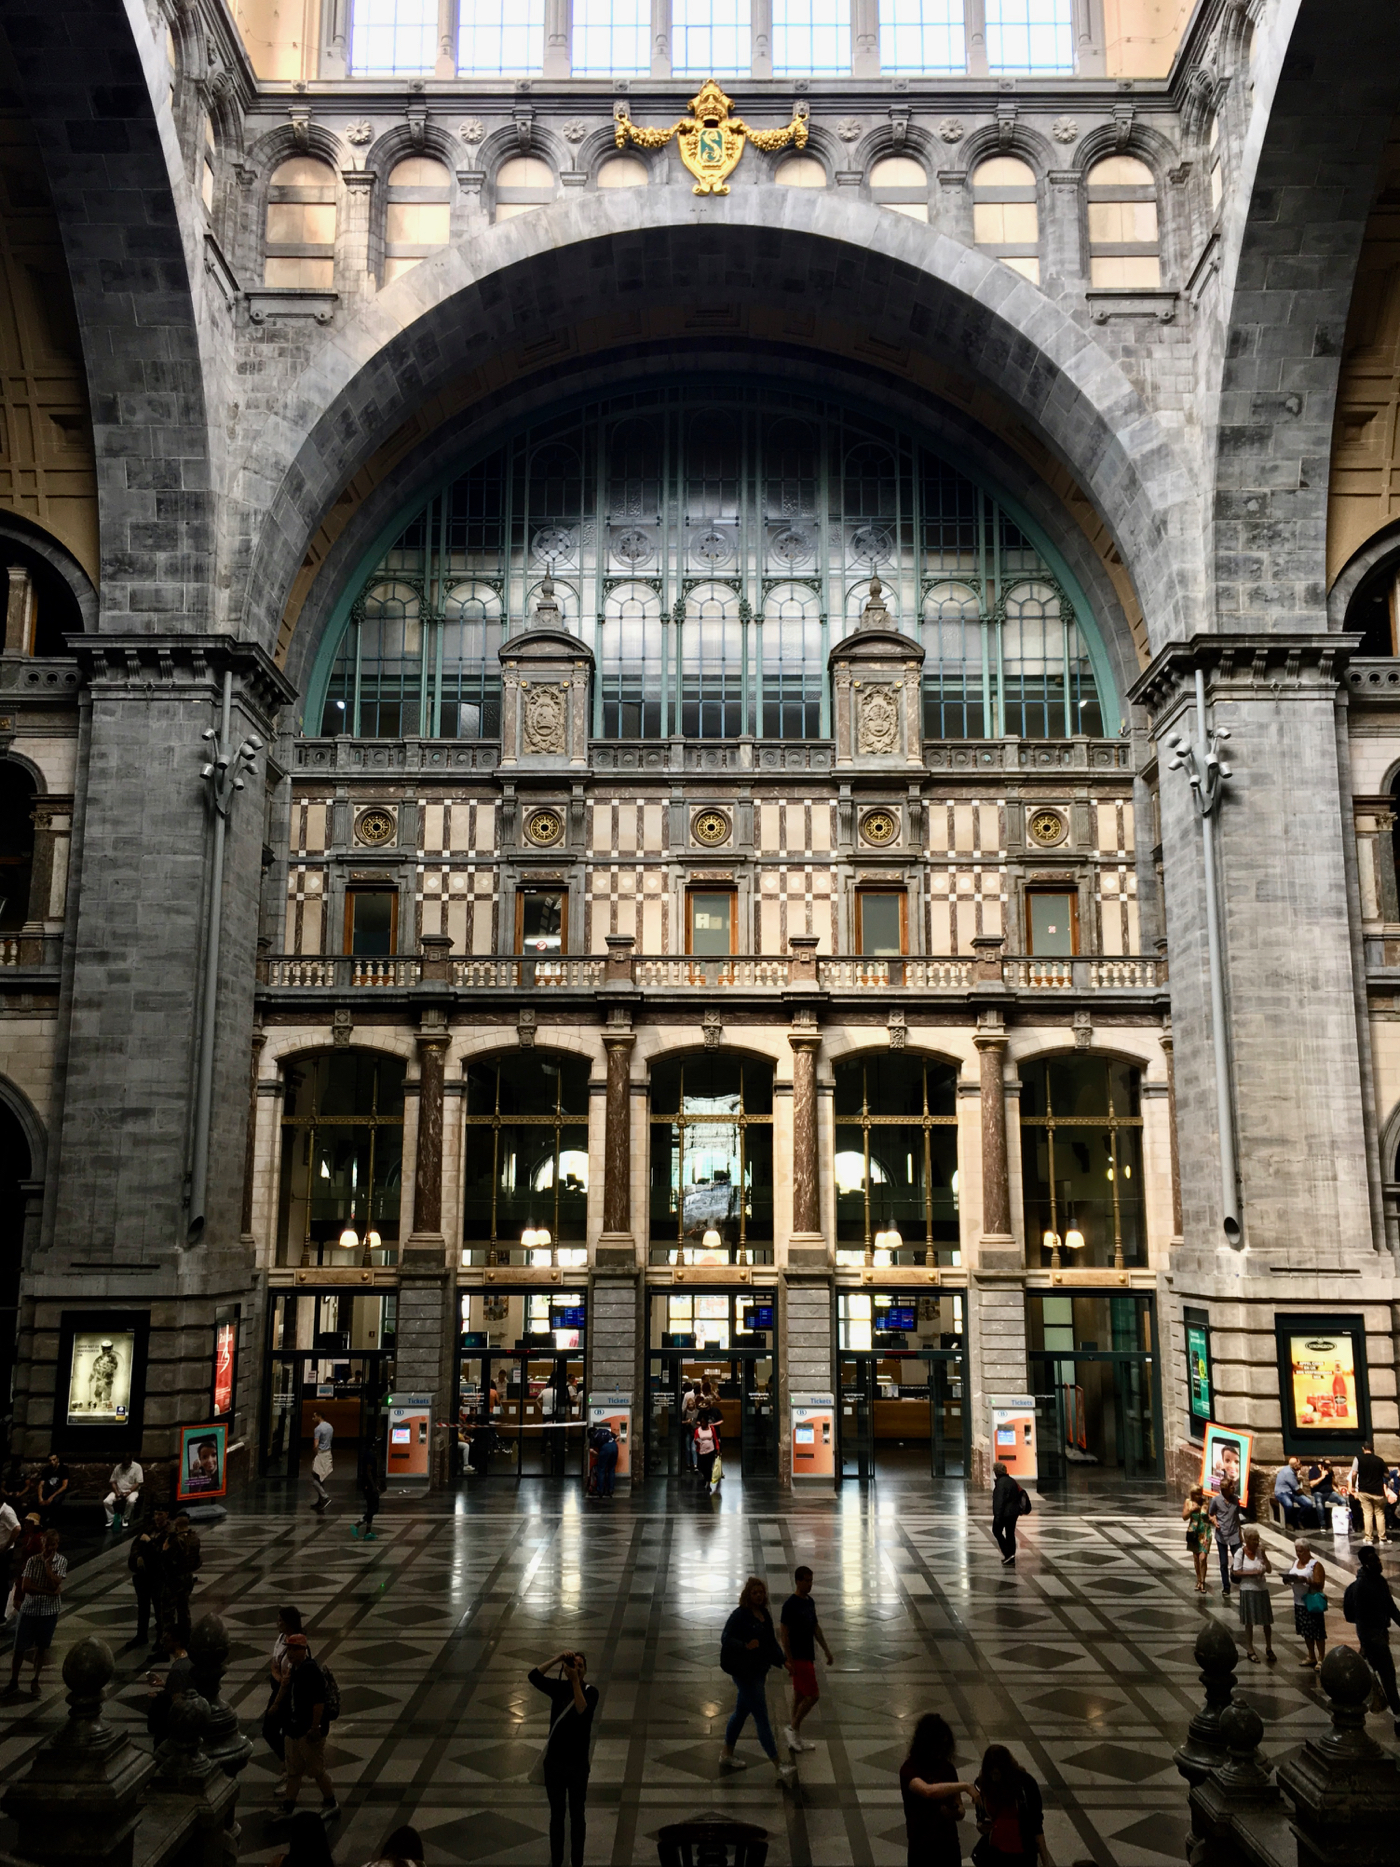 Antwerpen-Centraal, antwerp, train station, europe, belgium, belgian railways